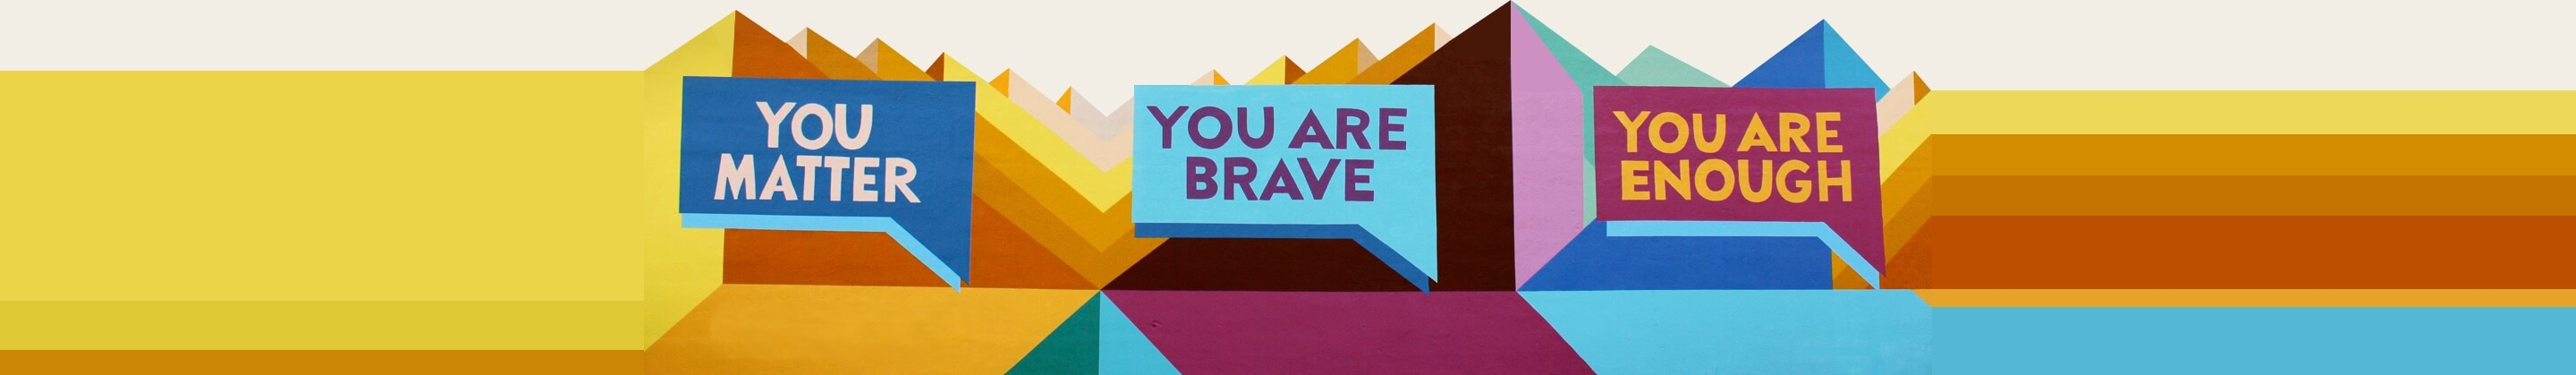 Illustration of colorful speech bubbles with text 'You Matter', 'You Are Brave' and 'You Are Enough'